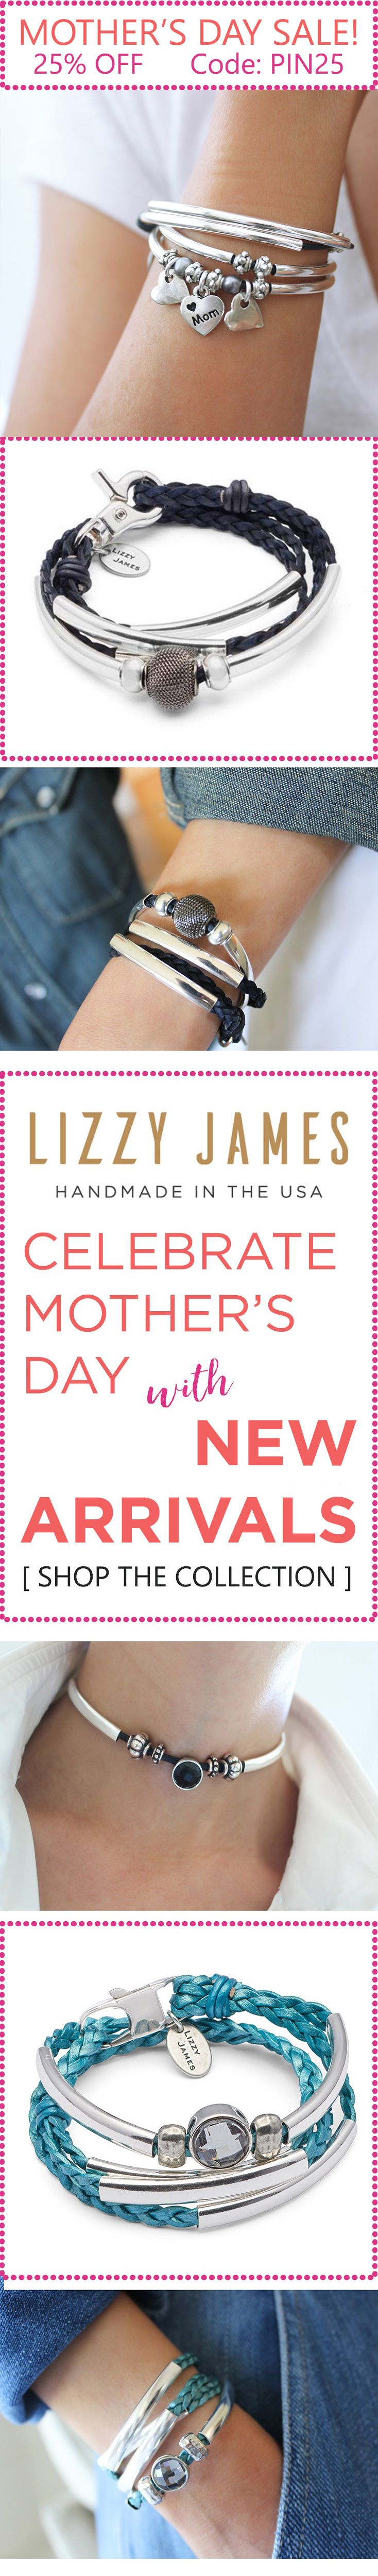 Lizzy James NEW Arrivals plus online exclusives just in time for Mother's Day! Get 25% OFF with CODE - PIN25 plus Free Shipping during our Mother's Day Sale. Featuring NEW colored braided leather wrap bracelets, charm bracelets, chokers, earrings and rings. Handcrafted in the USA. #MadeInUSA